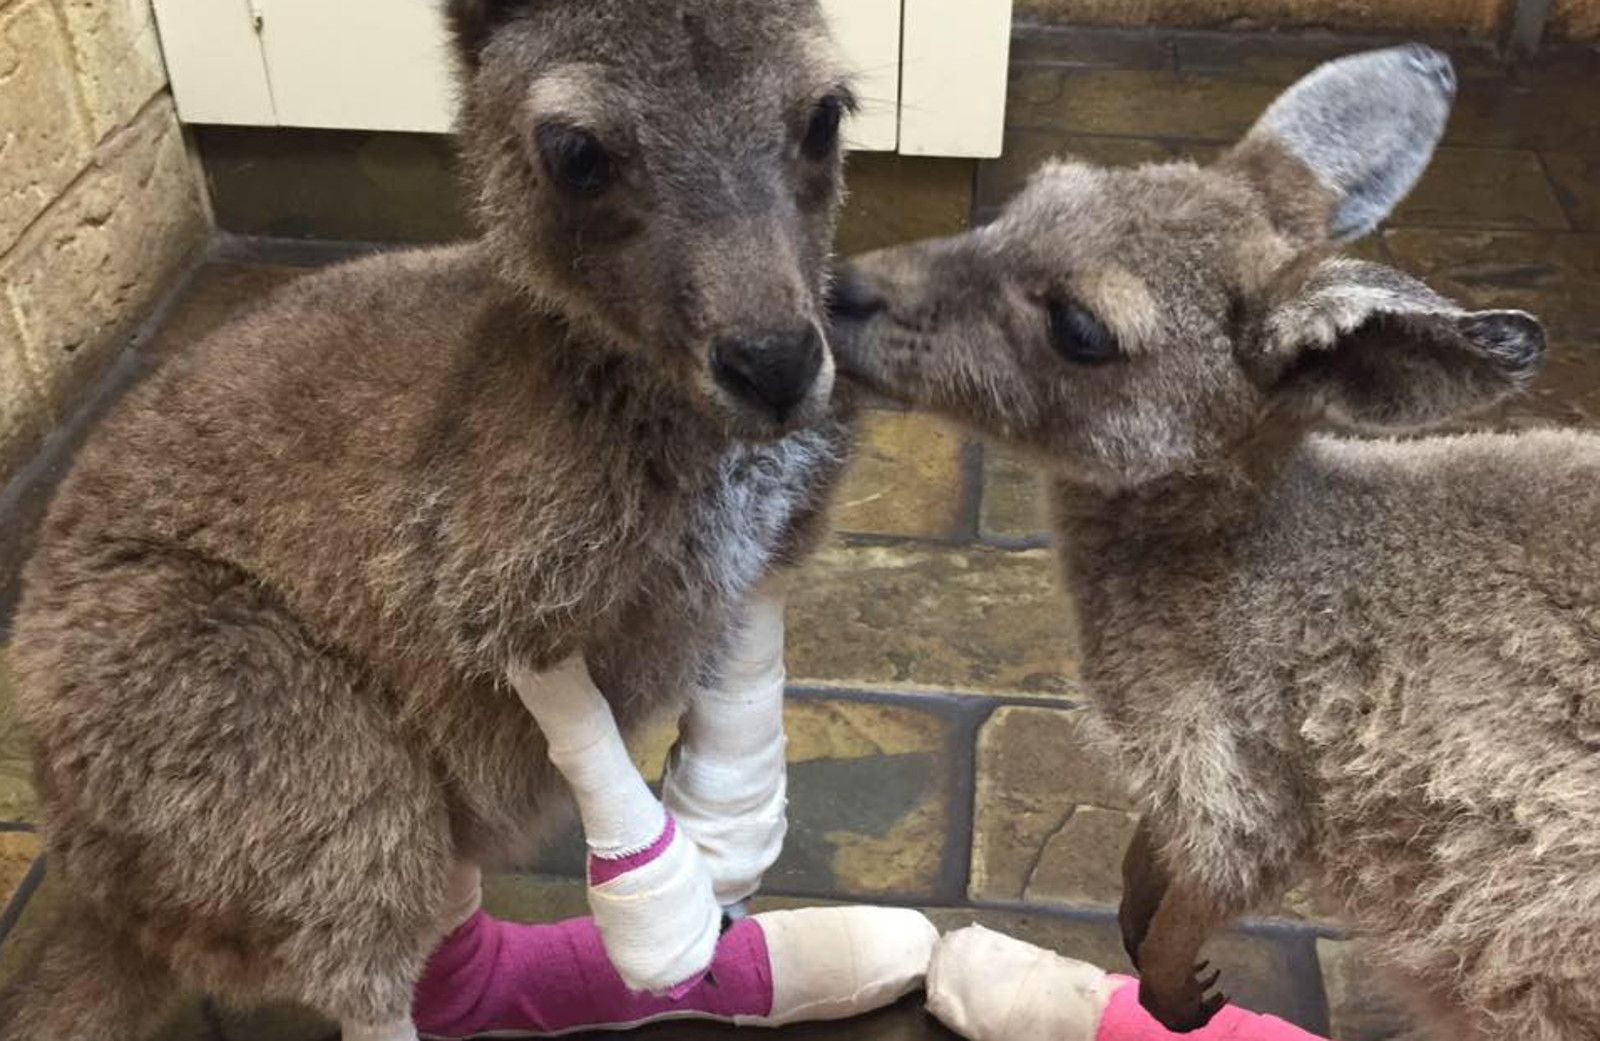 Orphaned Joeys Lost Their Home to Forest Fires, Now They